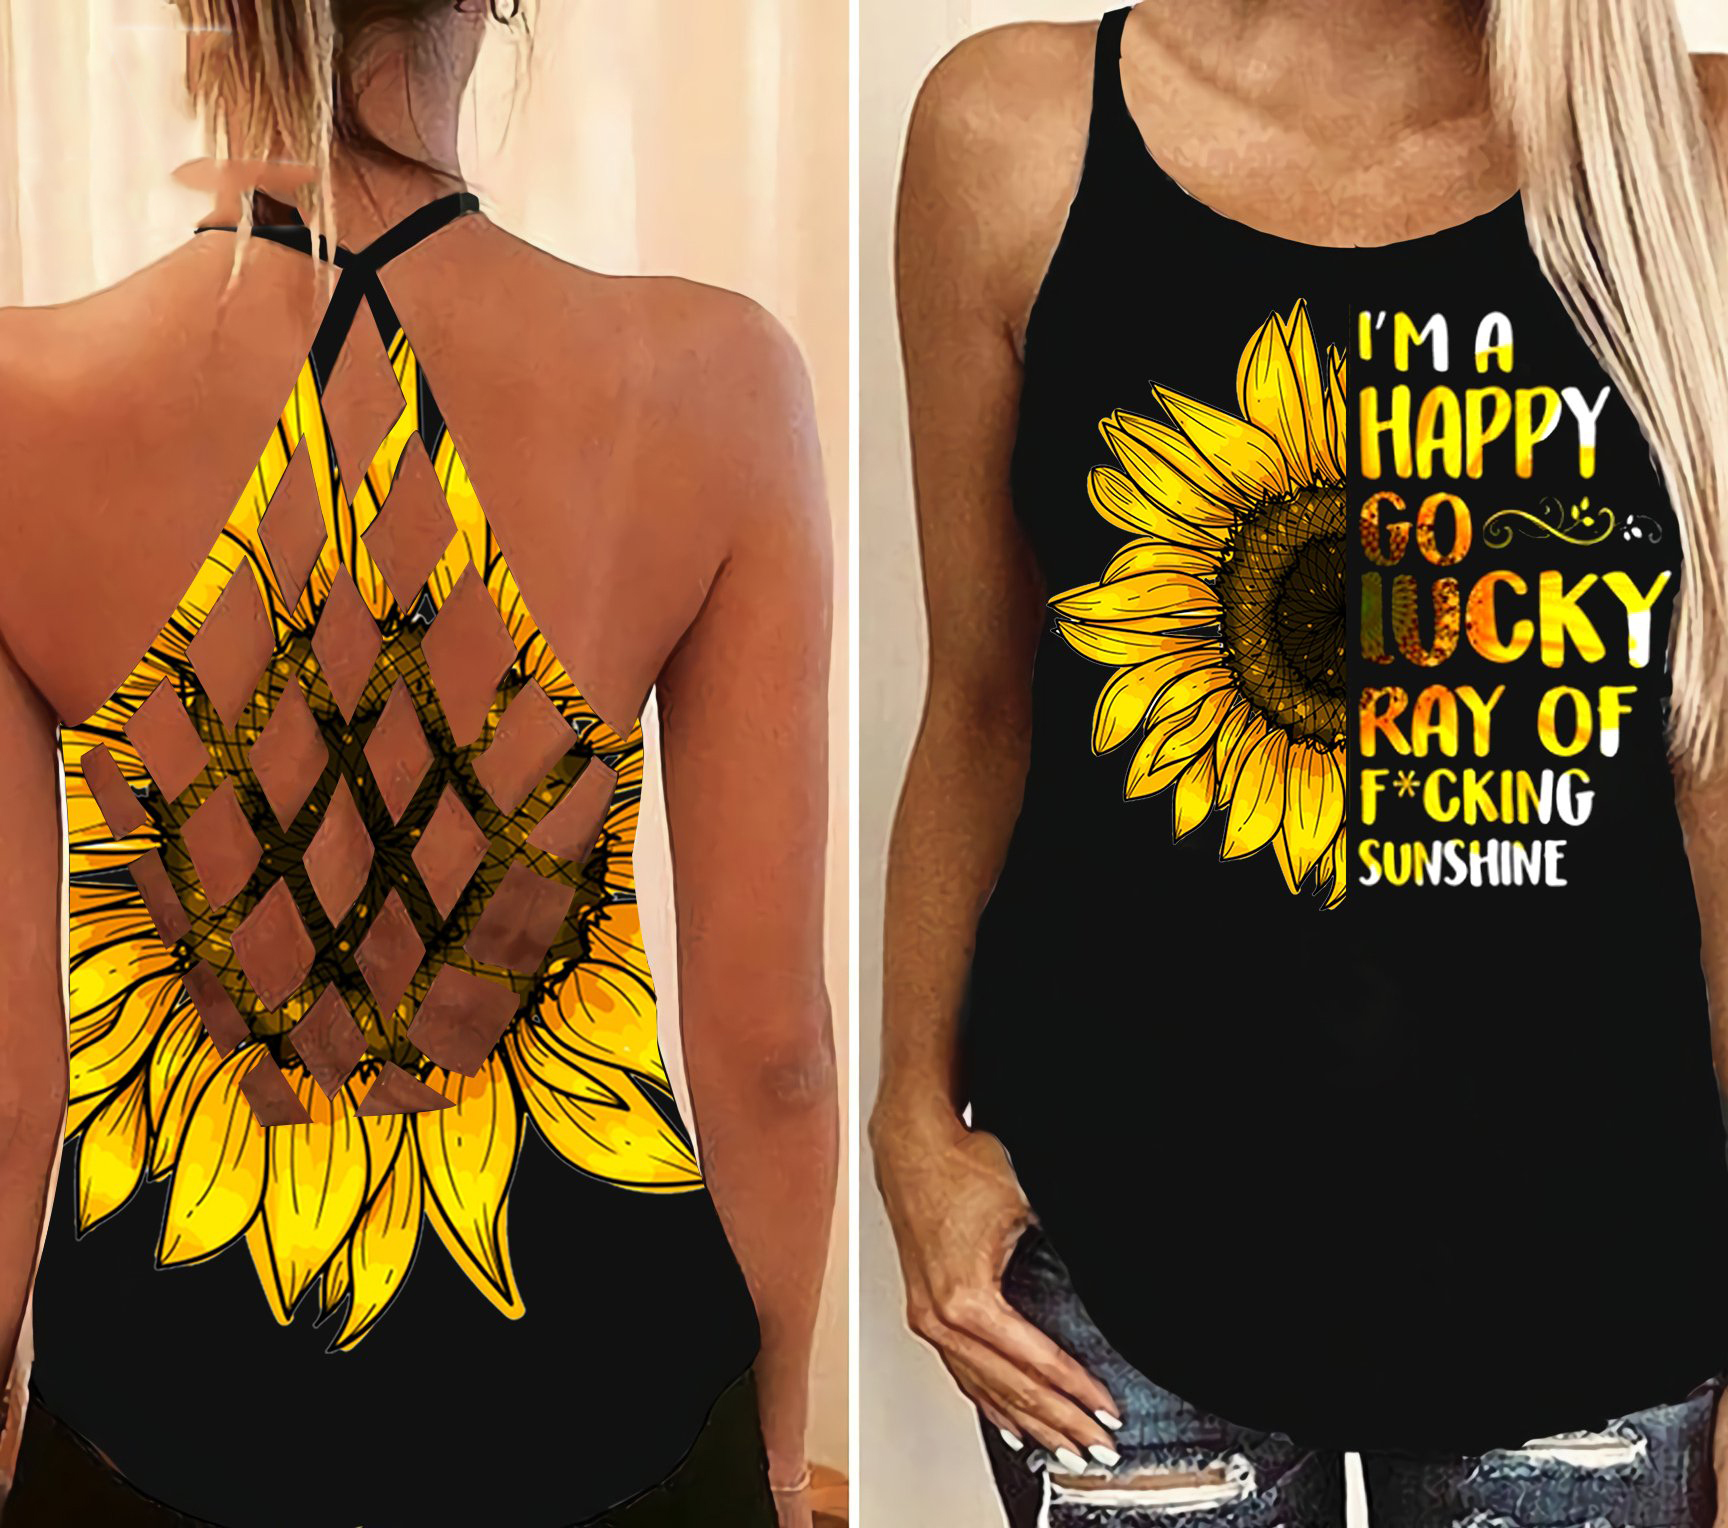 Sunflower Im a happy go lucky ray of fucking criss cross open back camisole tank top